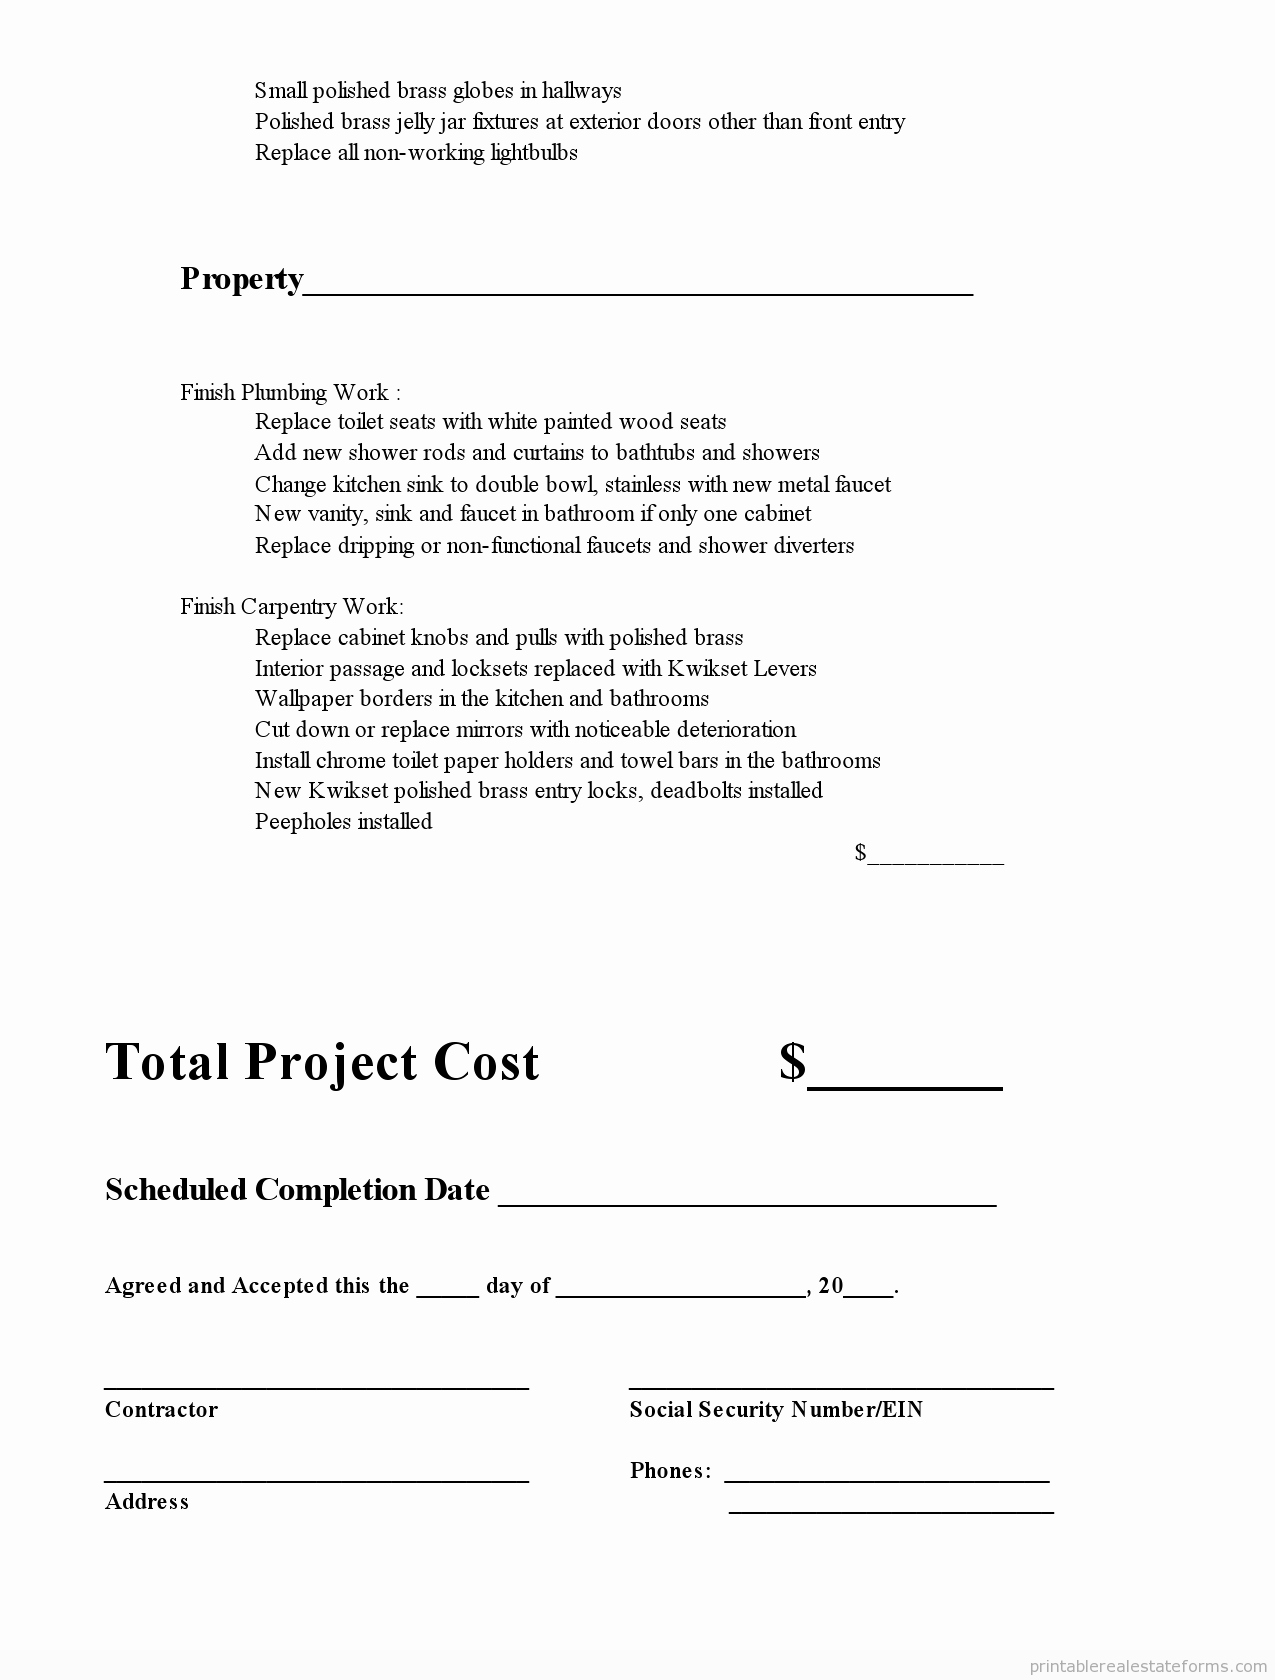 Subcontractor Contract Template Free Best Of Subcontractor Agreement0004 Printable Real Estate forms